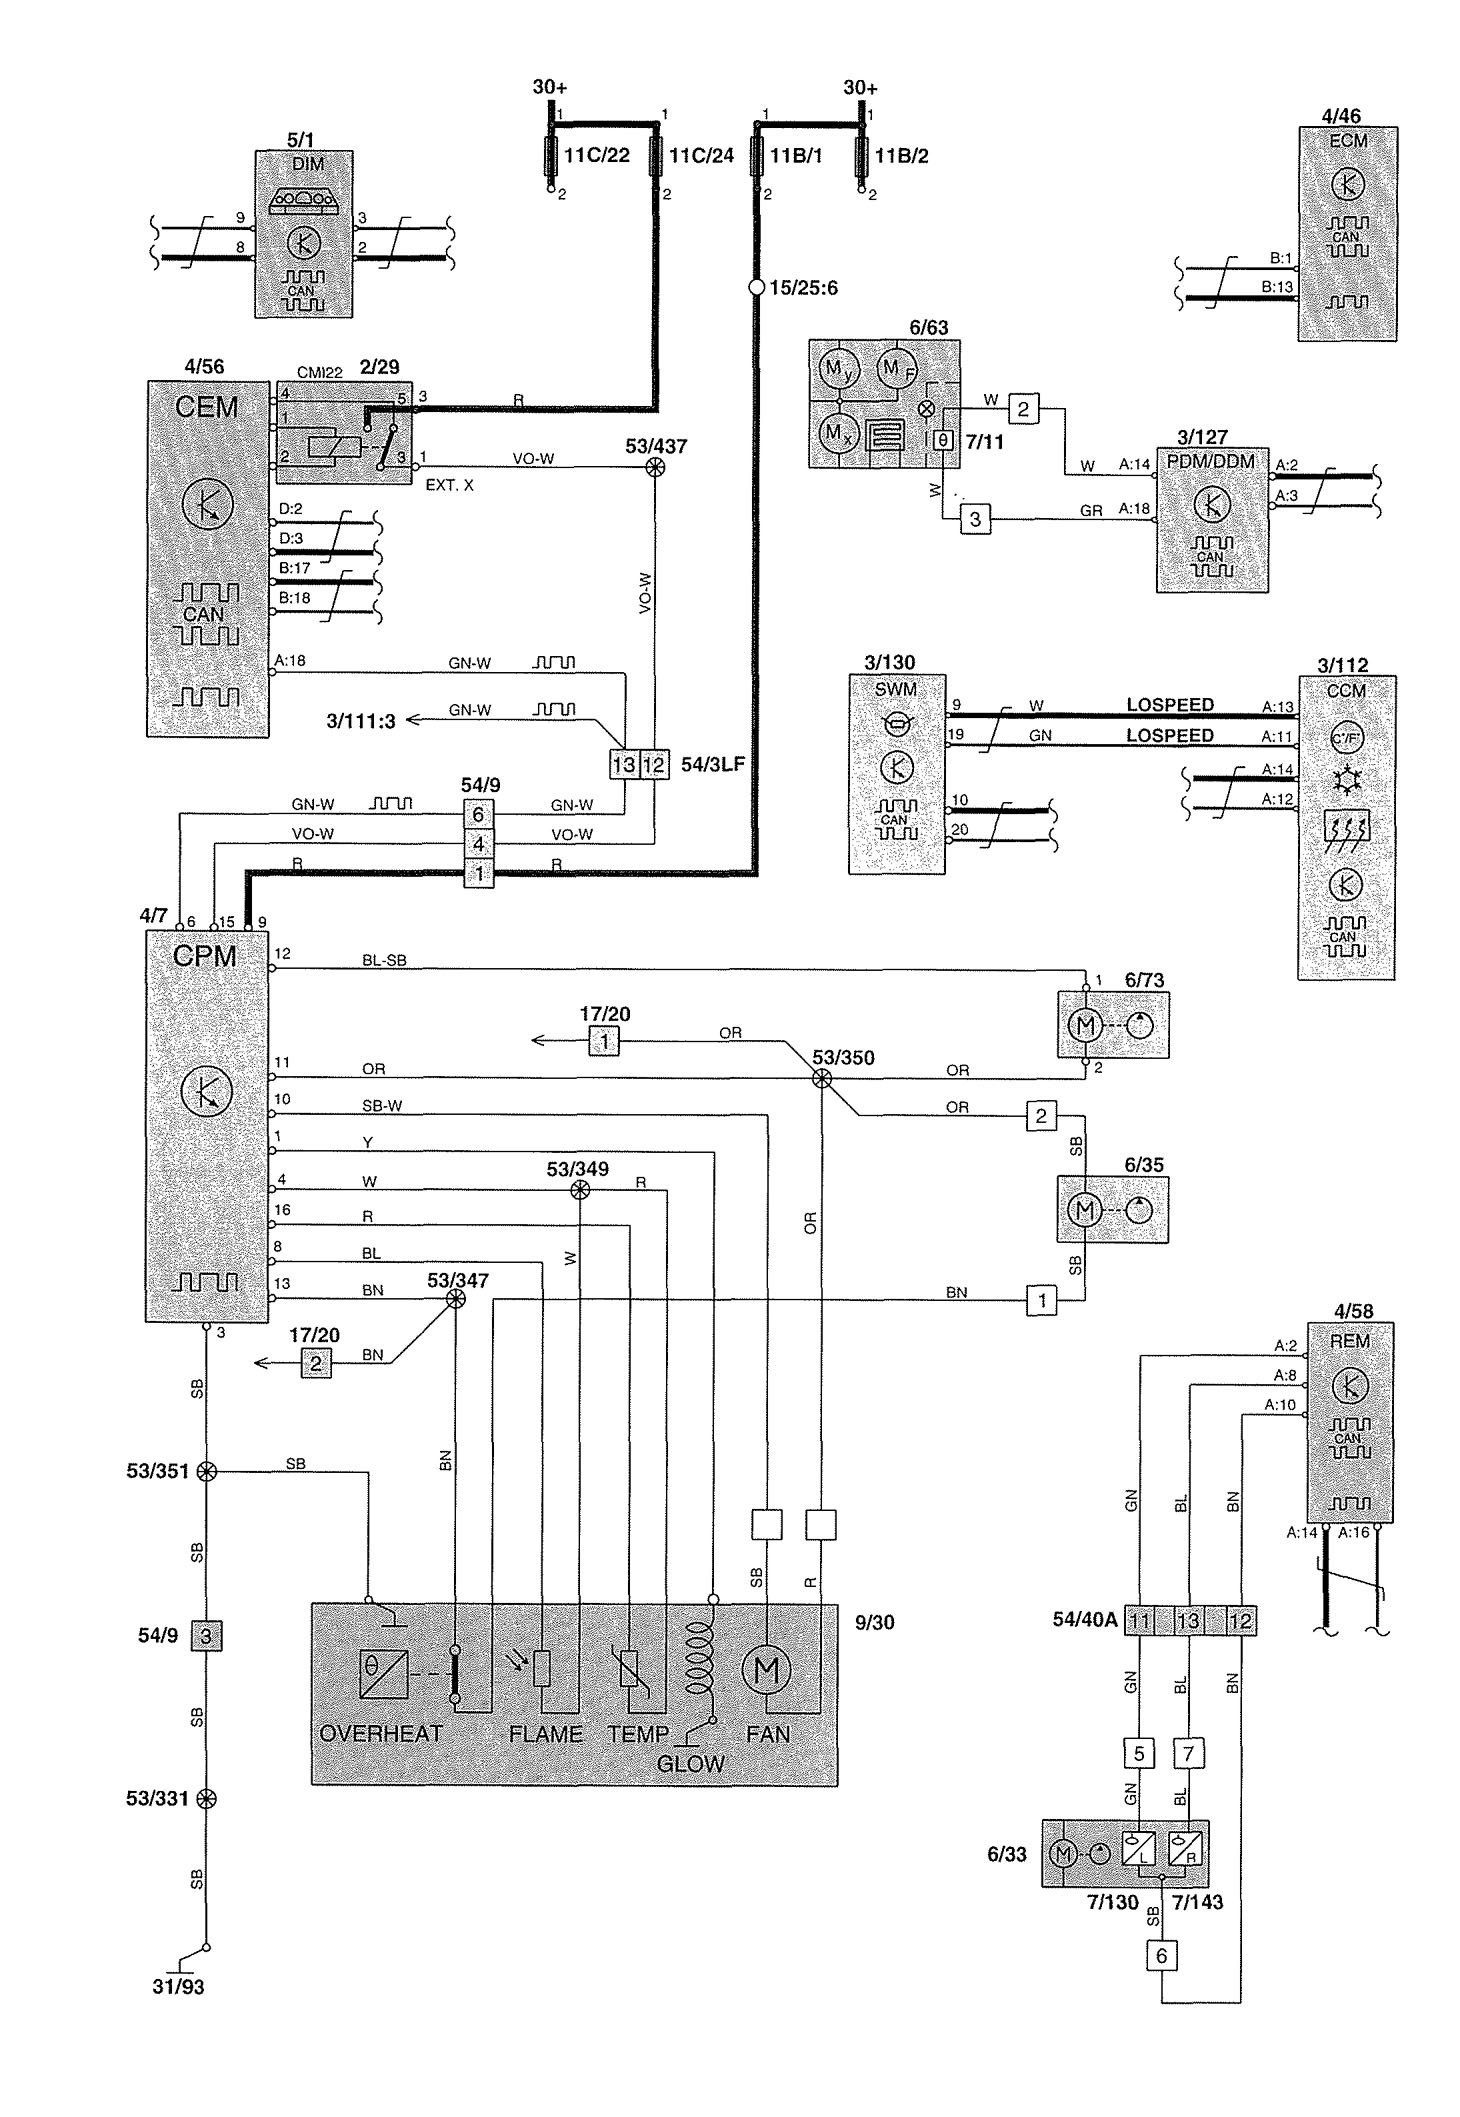 2009 volvo xc90 fuse box diagram